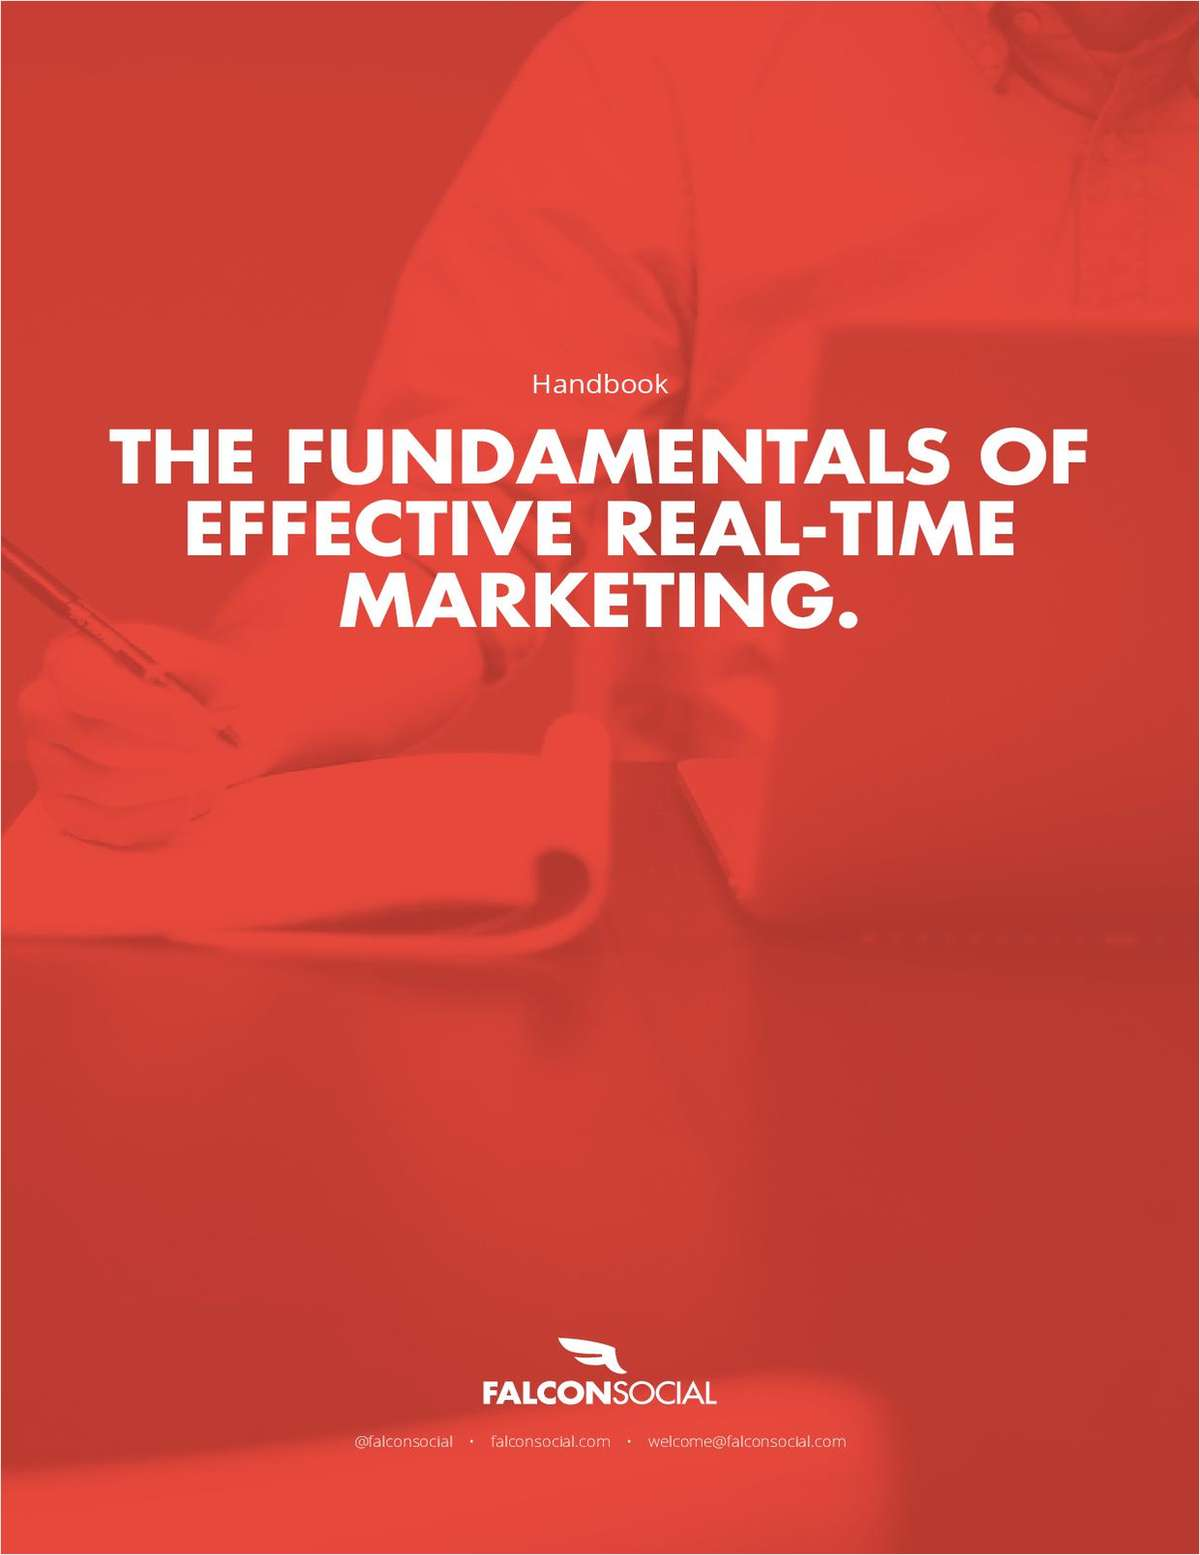 The Fundamentals of Effective Real-Time Marketing